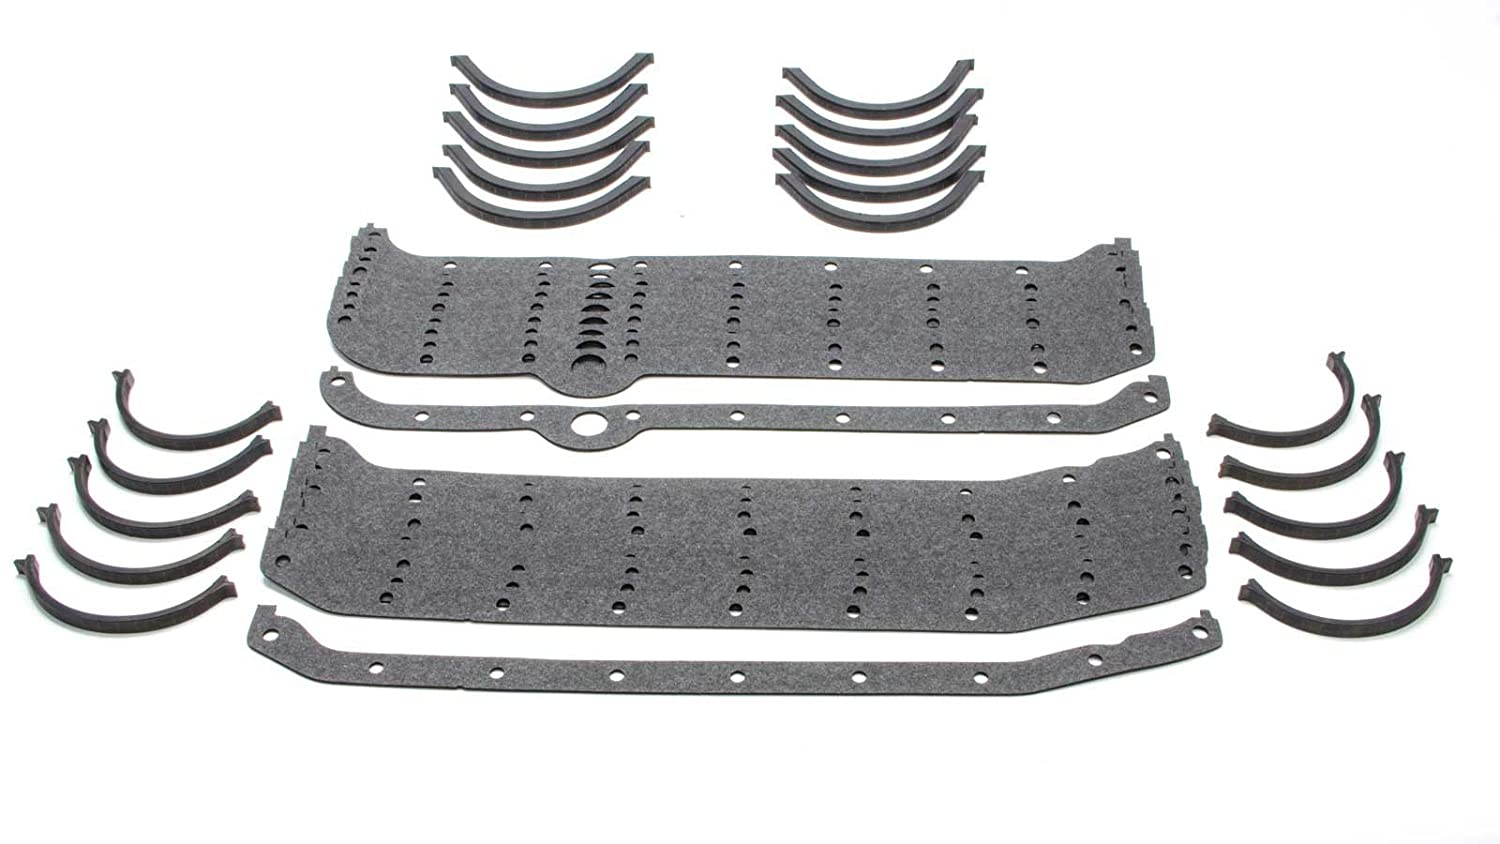 SCE 11092-10 Oil Pan Gasket for Small Block Chevy